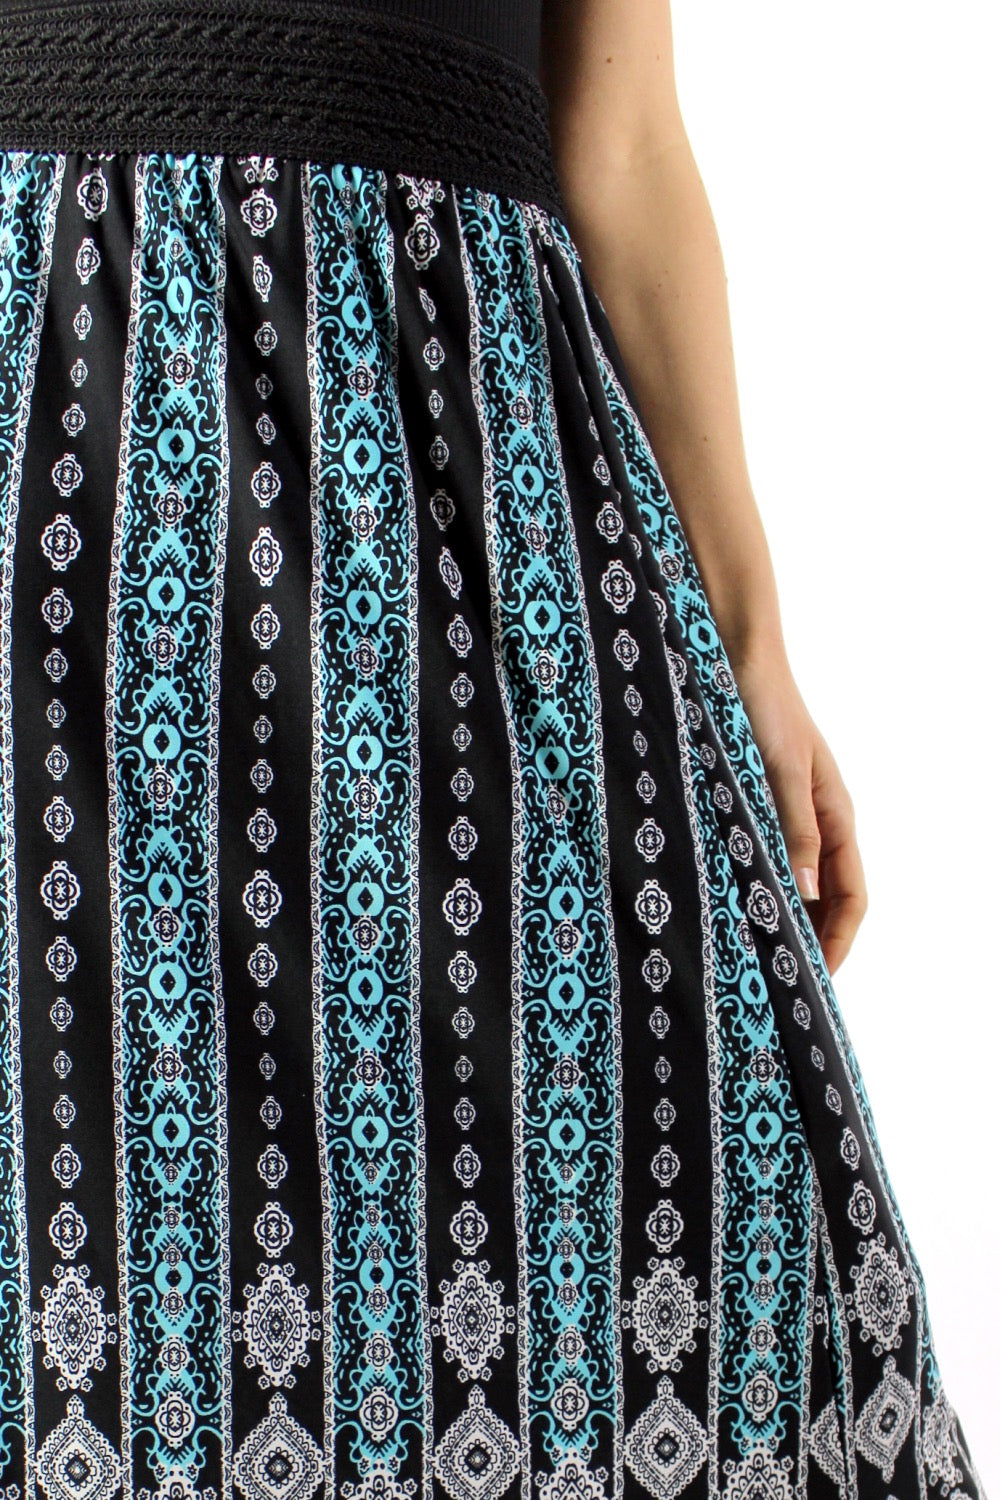 Women's Printed Long Skirt with Side Slit